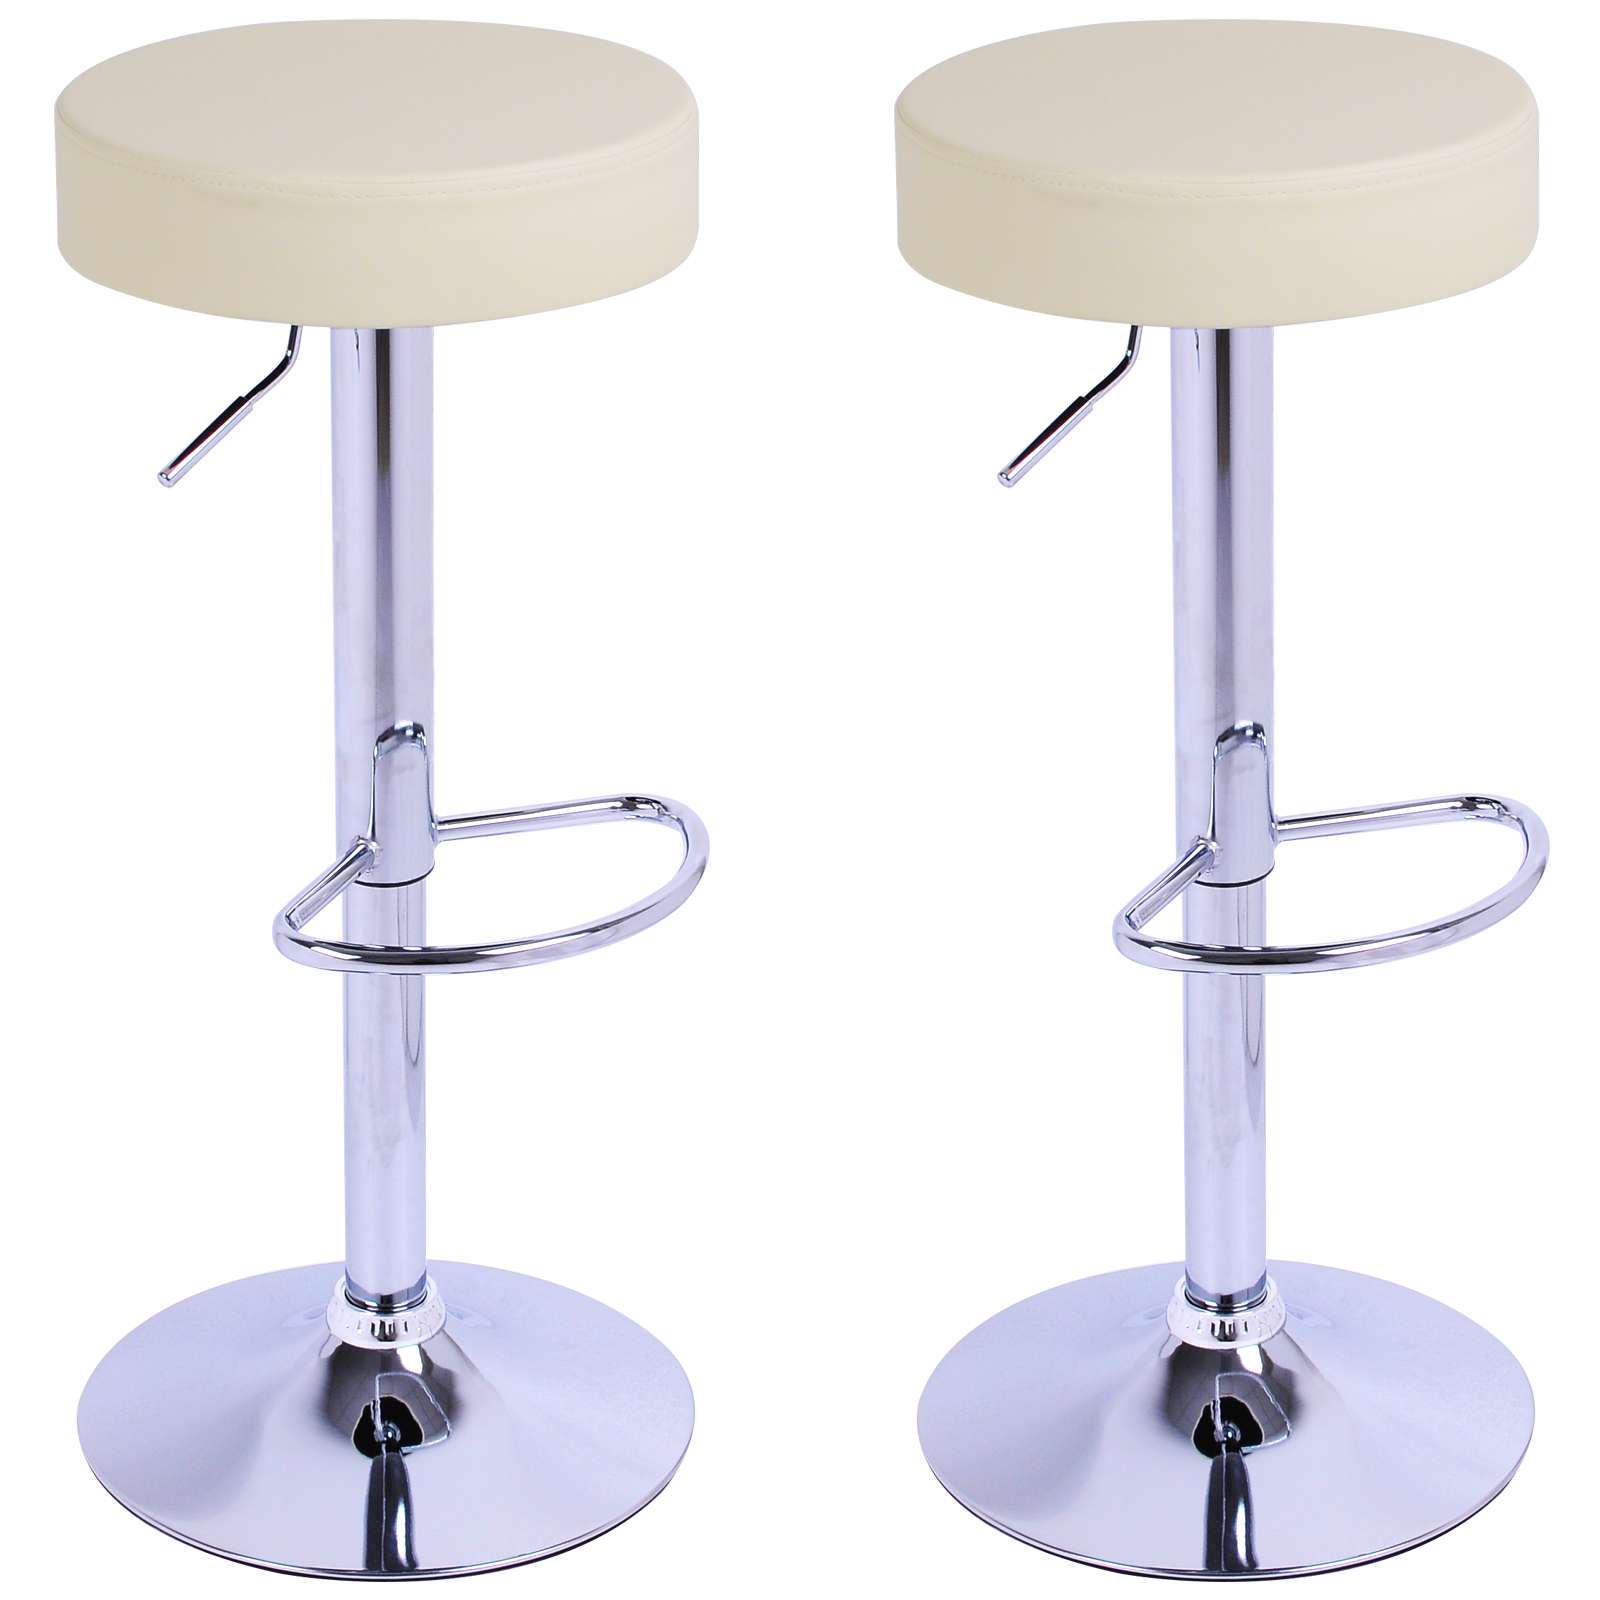 2 x bar stools kitchen chair swivel breakfast stool chrome for Stool chair